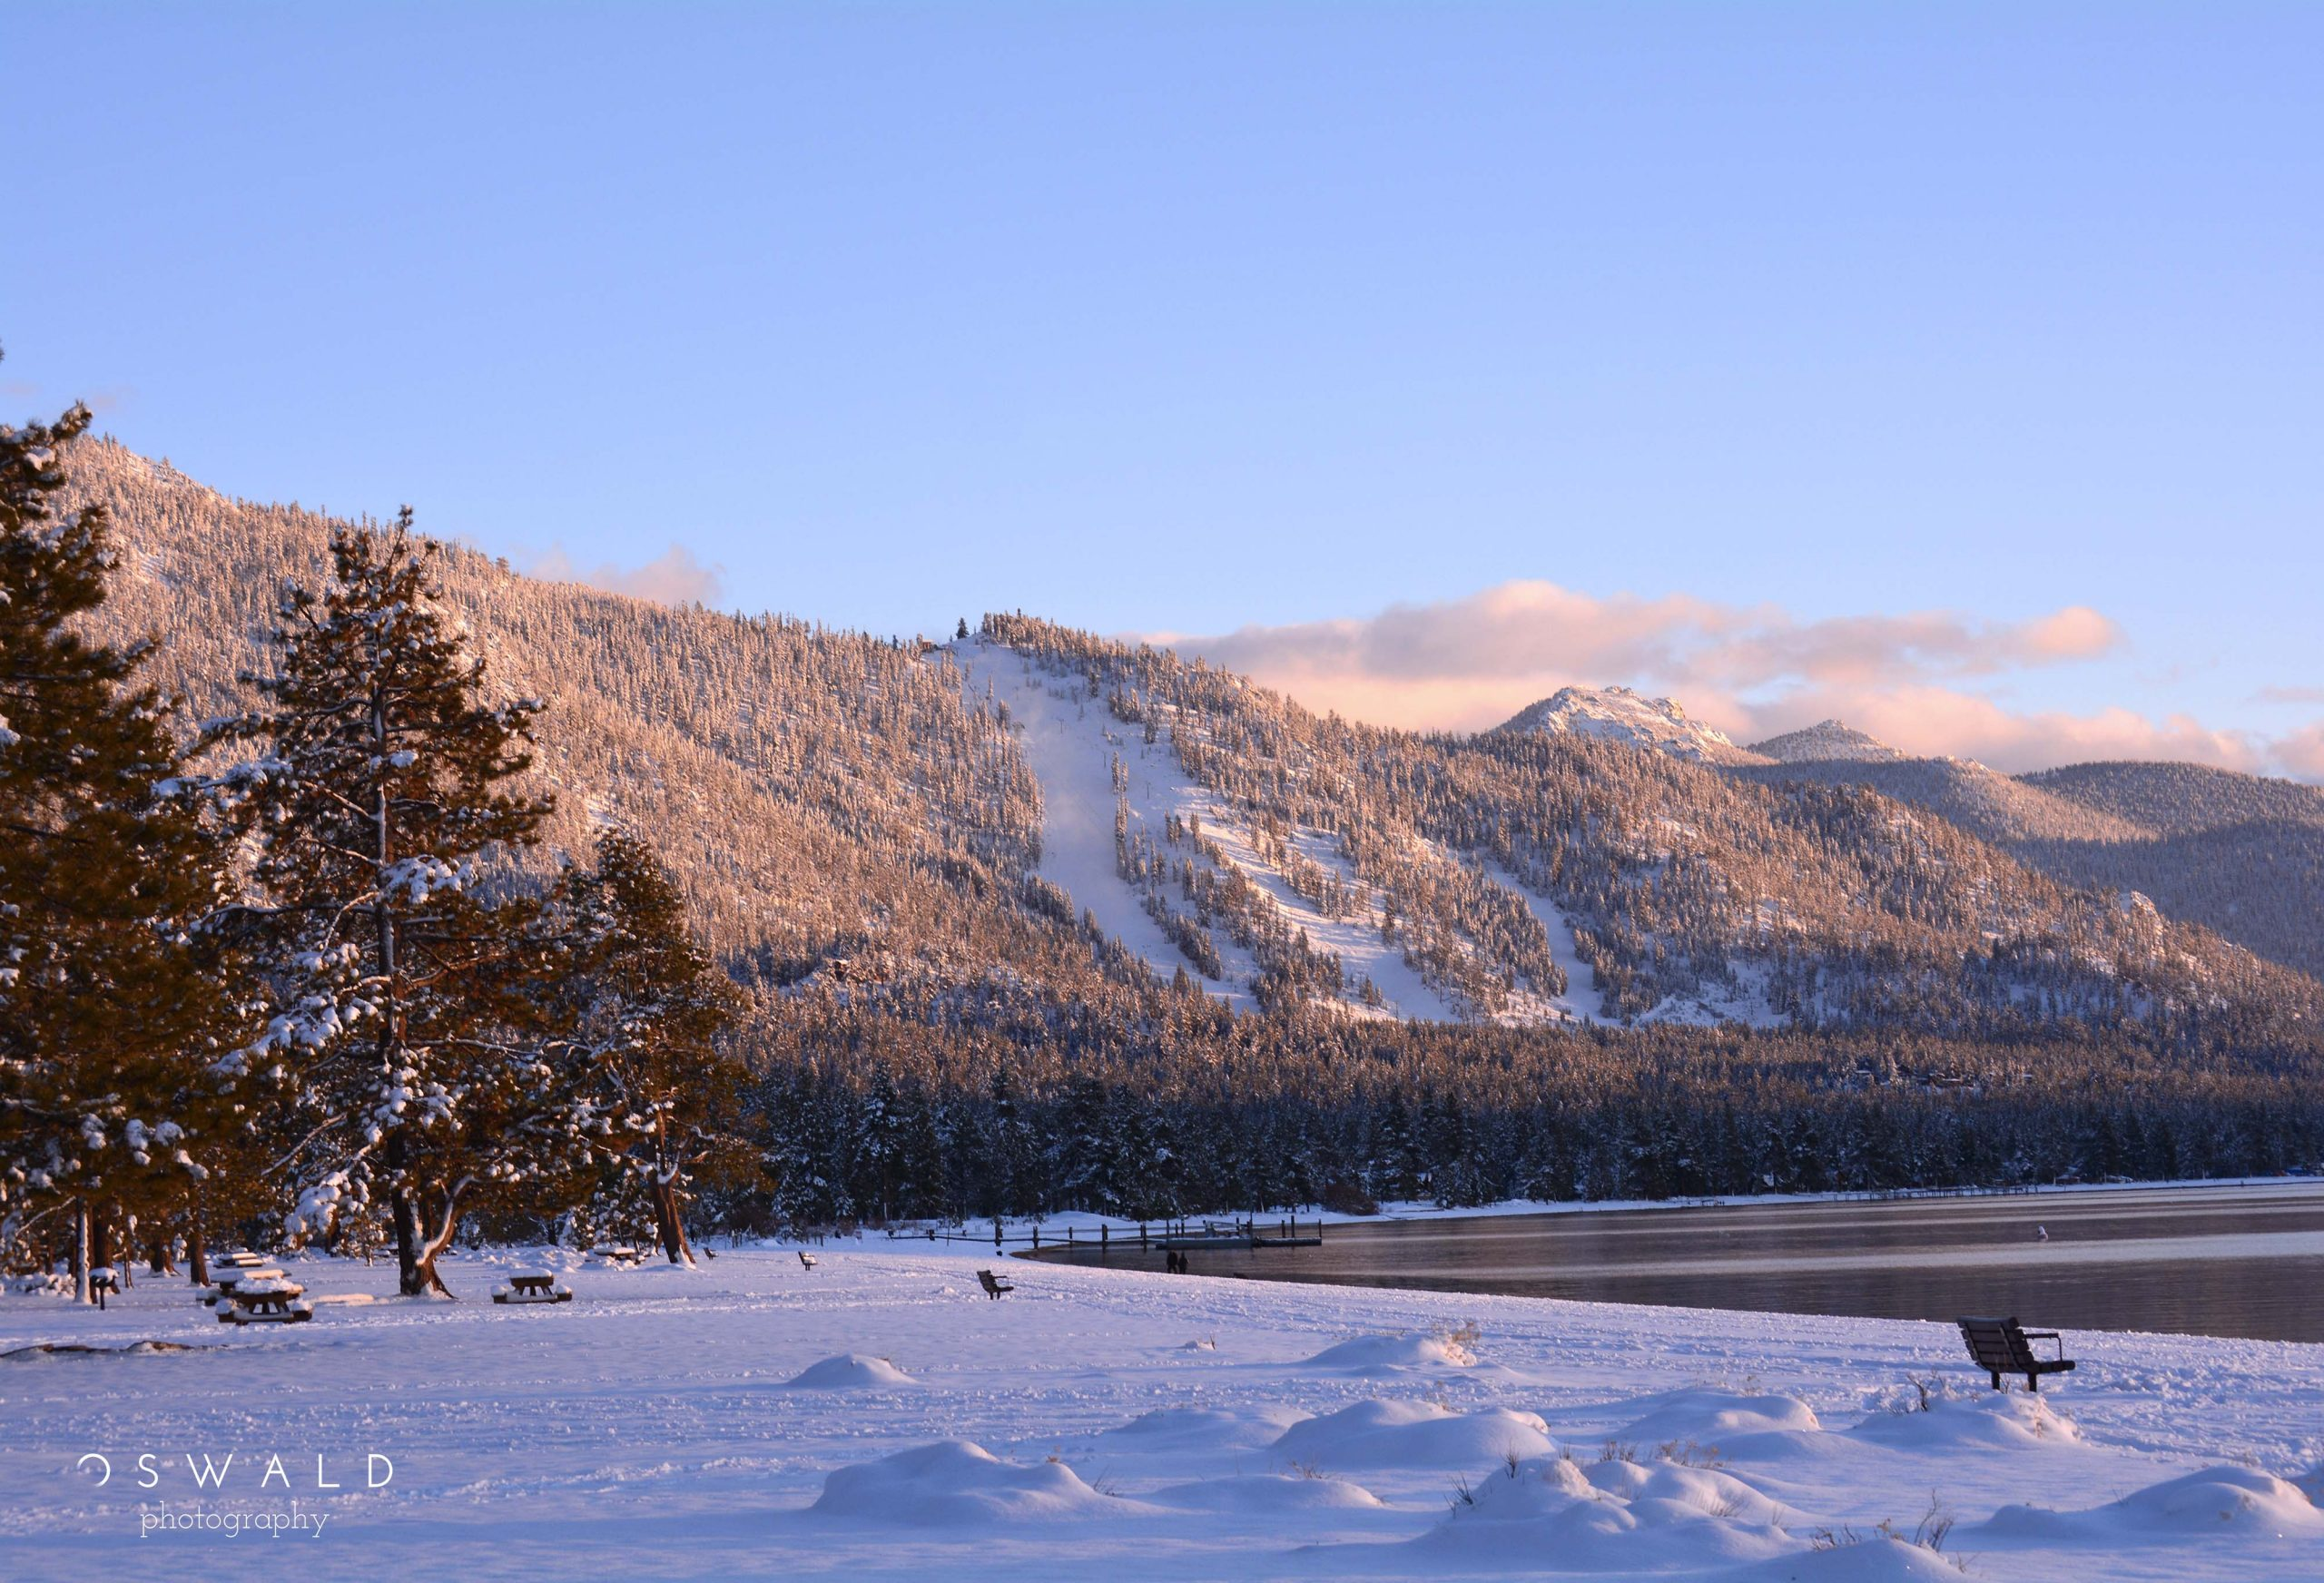 A quiet and lonely photograph of the shores of South Lake Tahoe at Sunset. Recent snowfall blankets the beach as the light begins to wane.